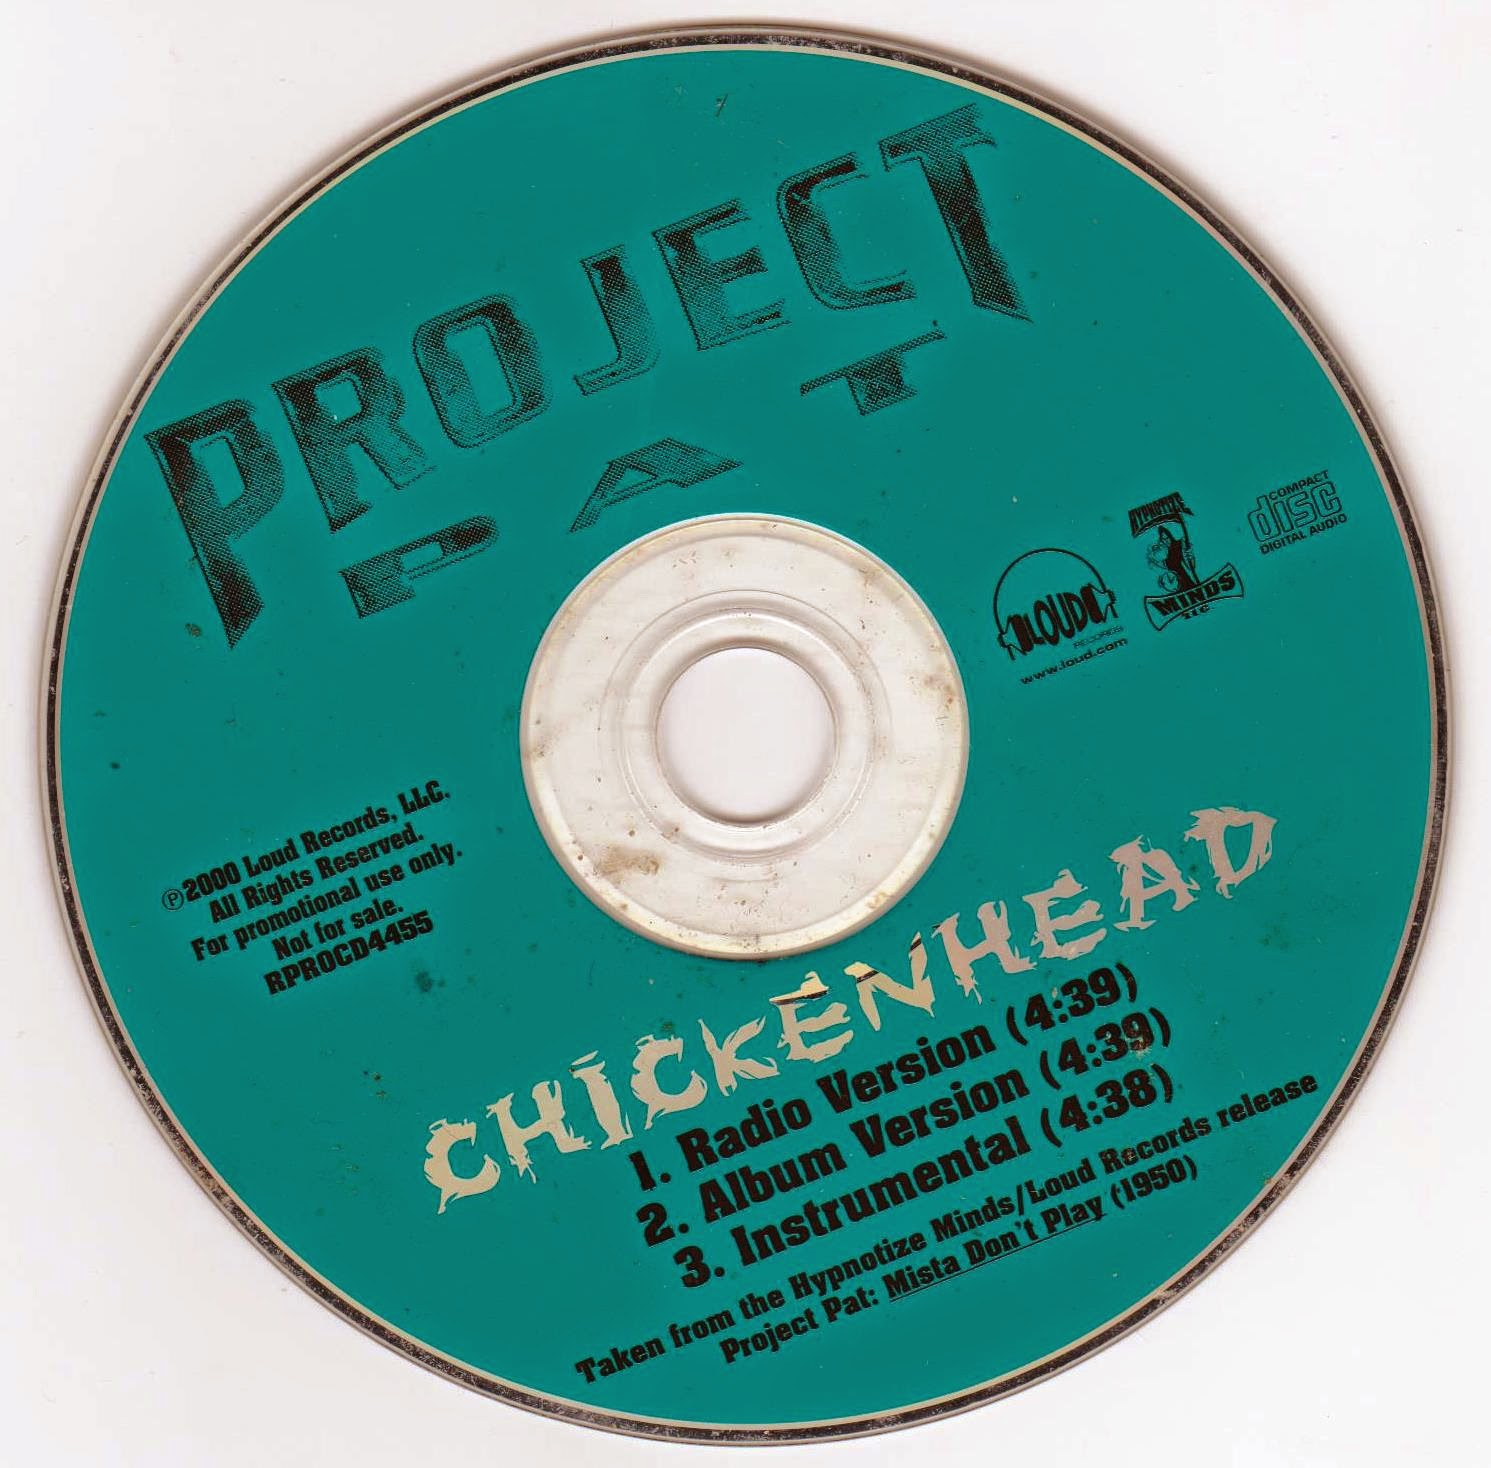 project pat chickenhead Listen to the biggest hits from project pat, including don't save her, chickenhead, raised in the projects, and more check it out on slacker radio, on free internet stations like '00s hip hop too.